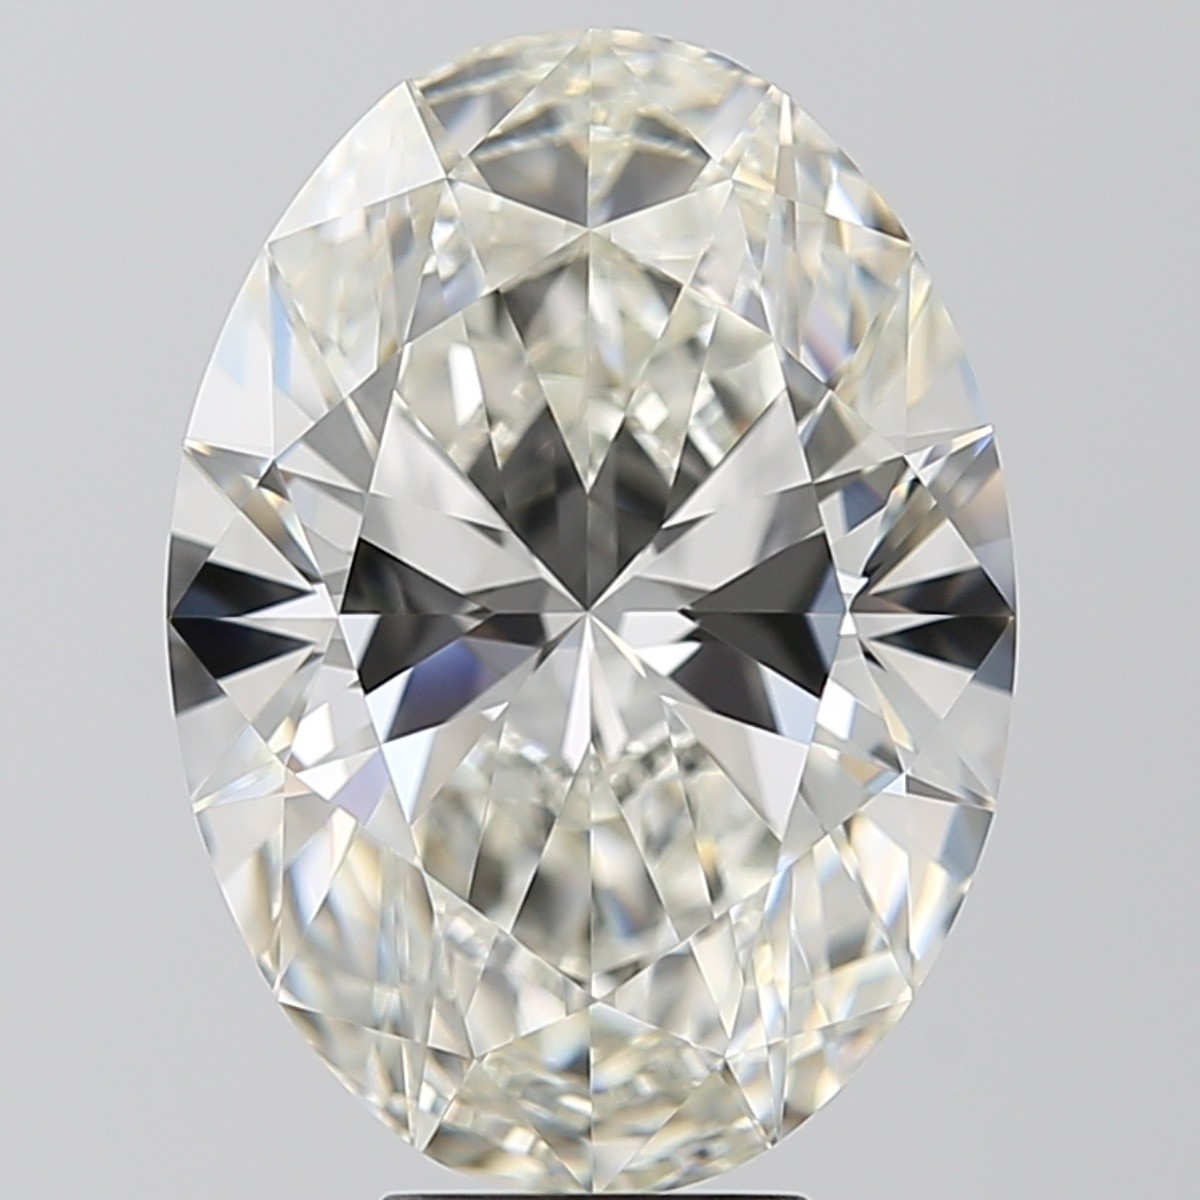 6.52 Carat Oval Diamond (I/VVS2)